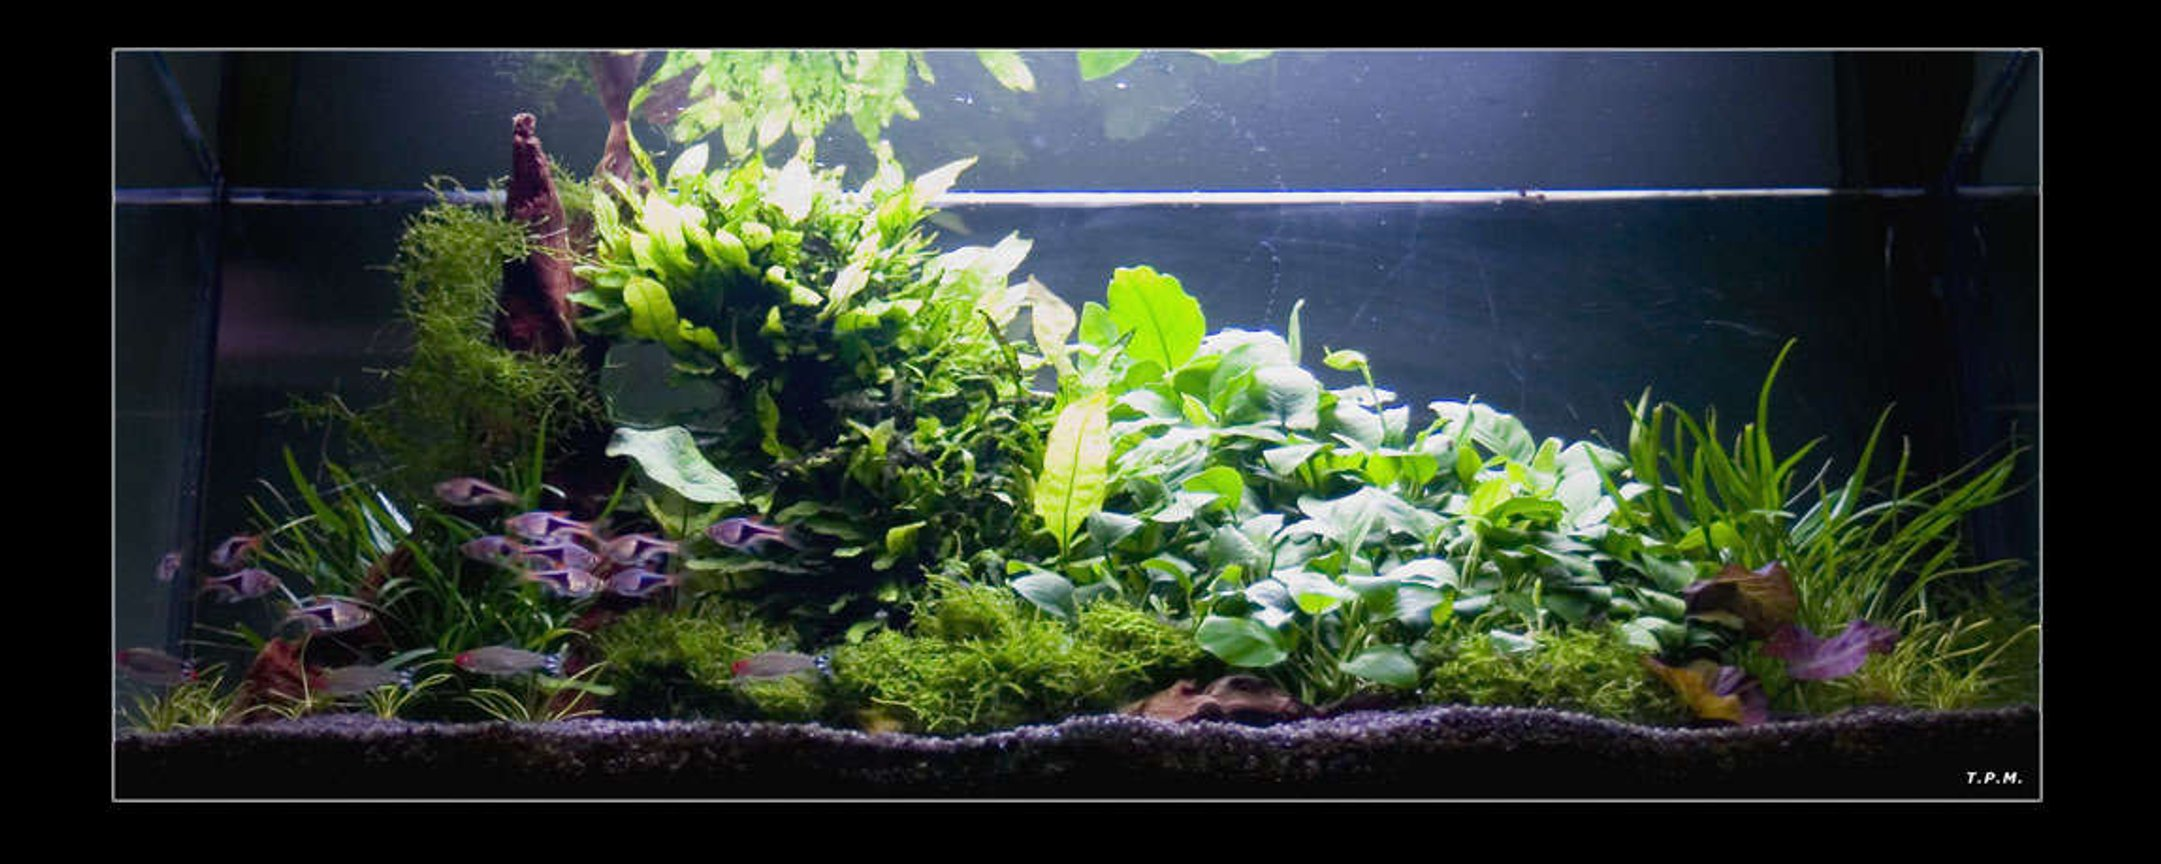 31 gallons planted tank (mostly live plants and fish) - some plants